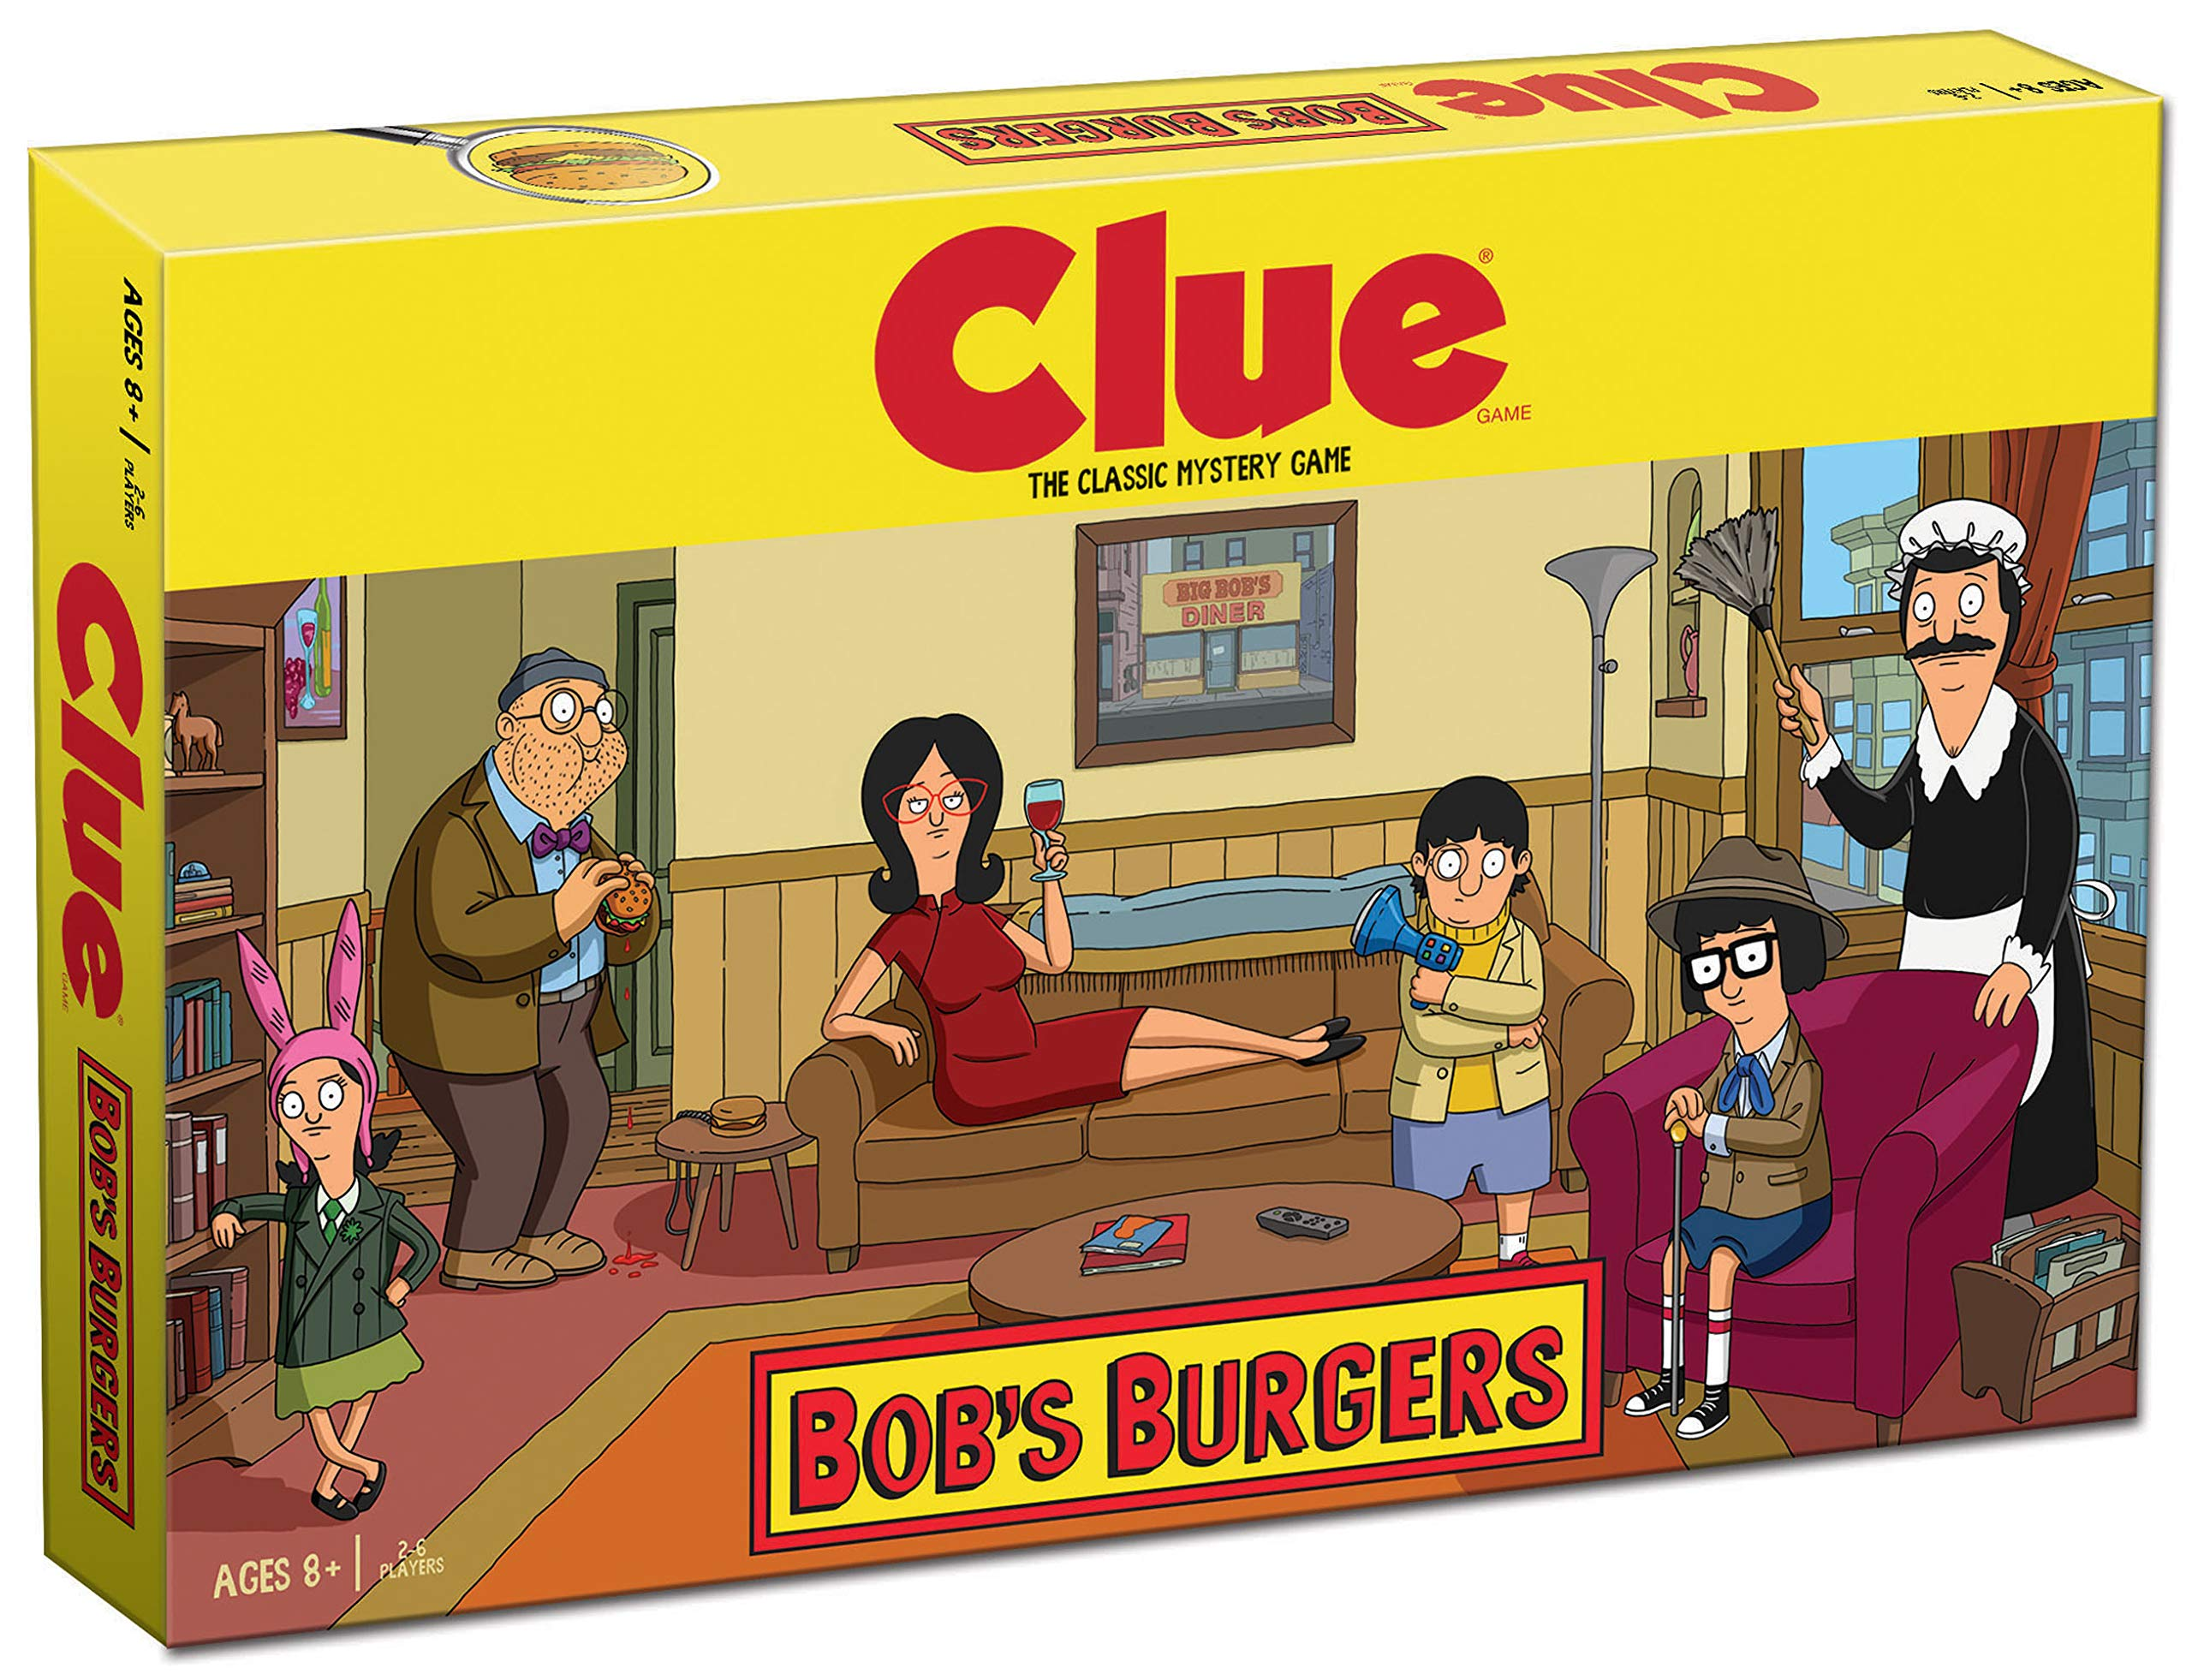 USAopoly Clue Bobs Burgers Edition Board Game: Amazon.es: Juguetes y juegos